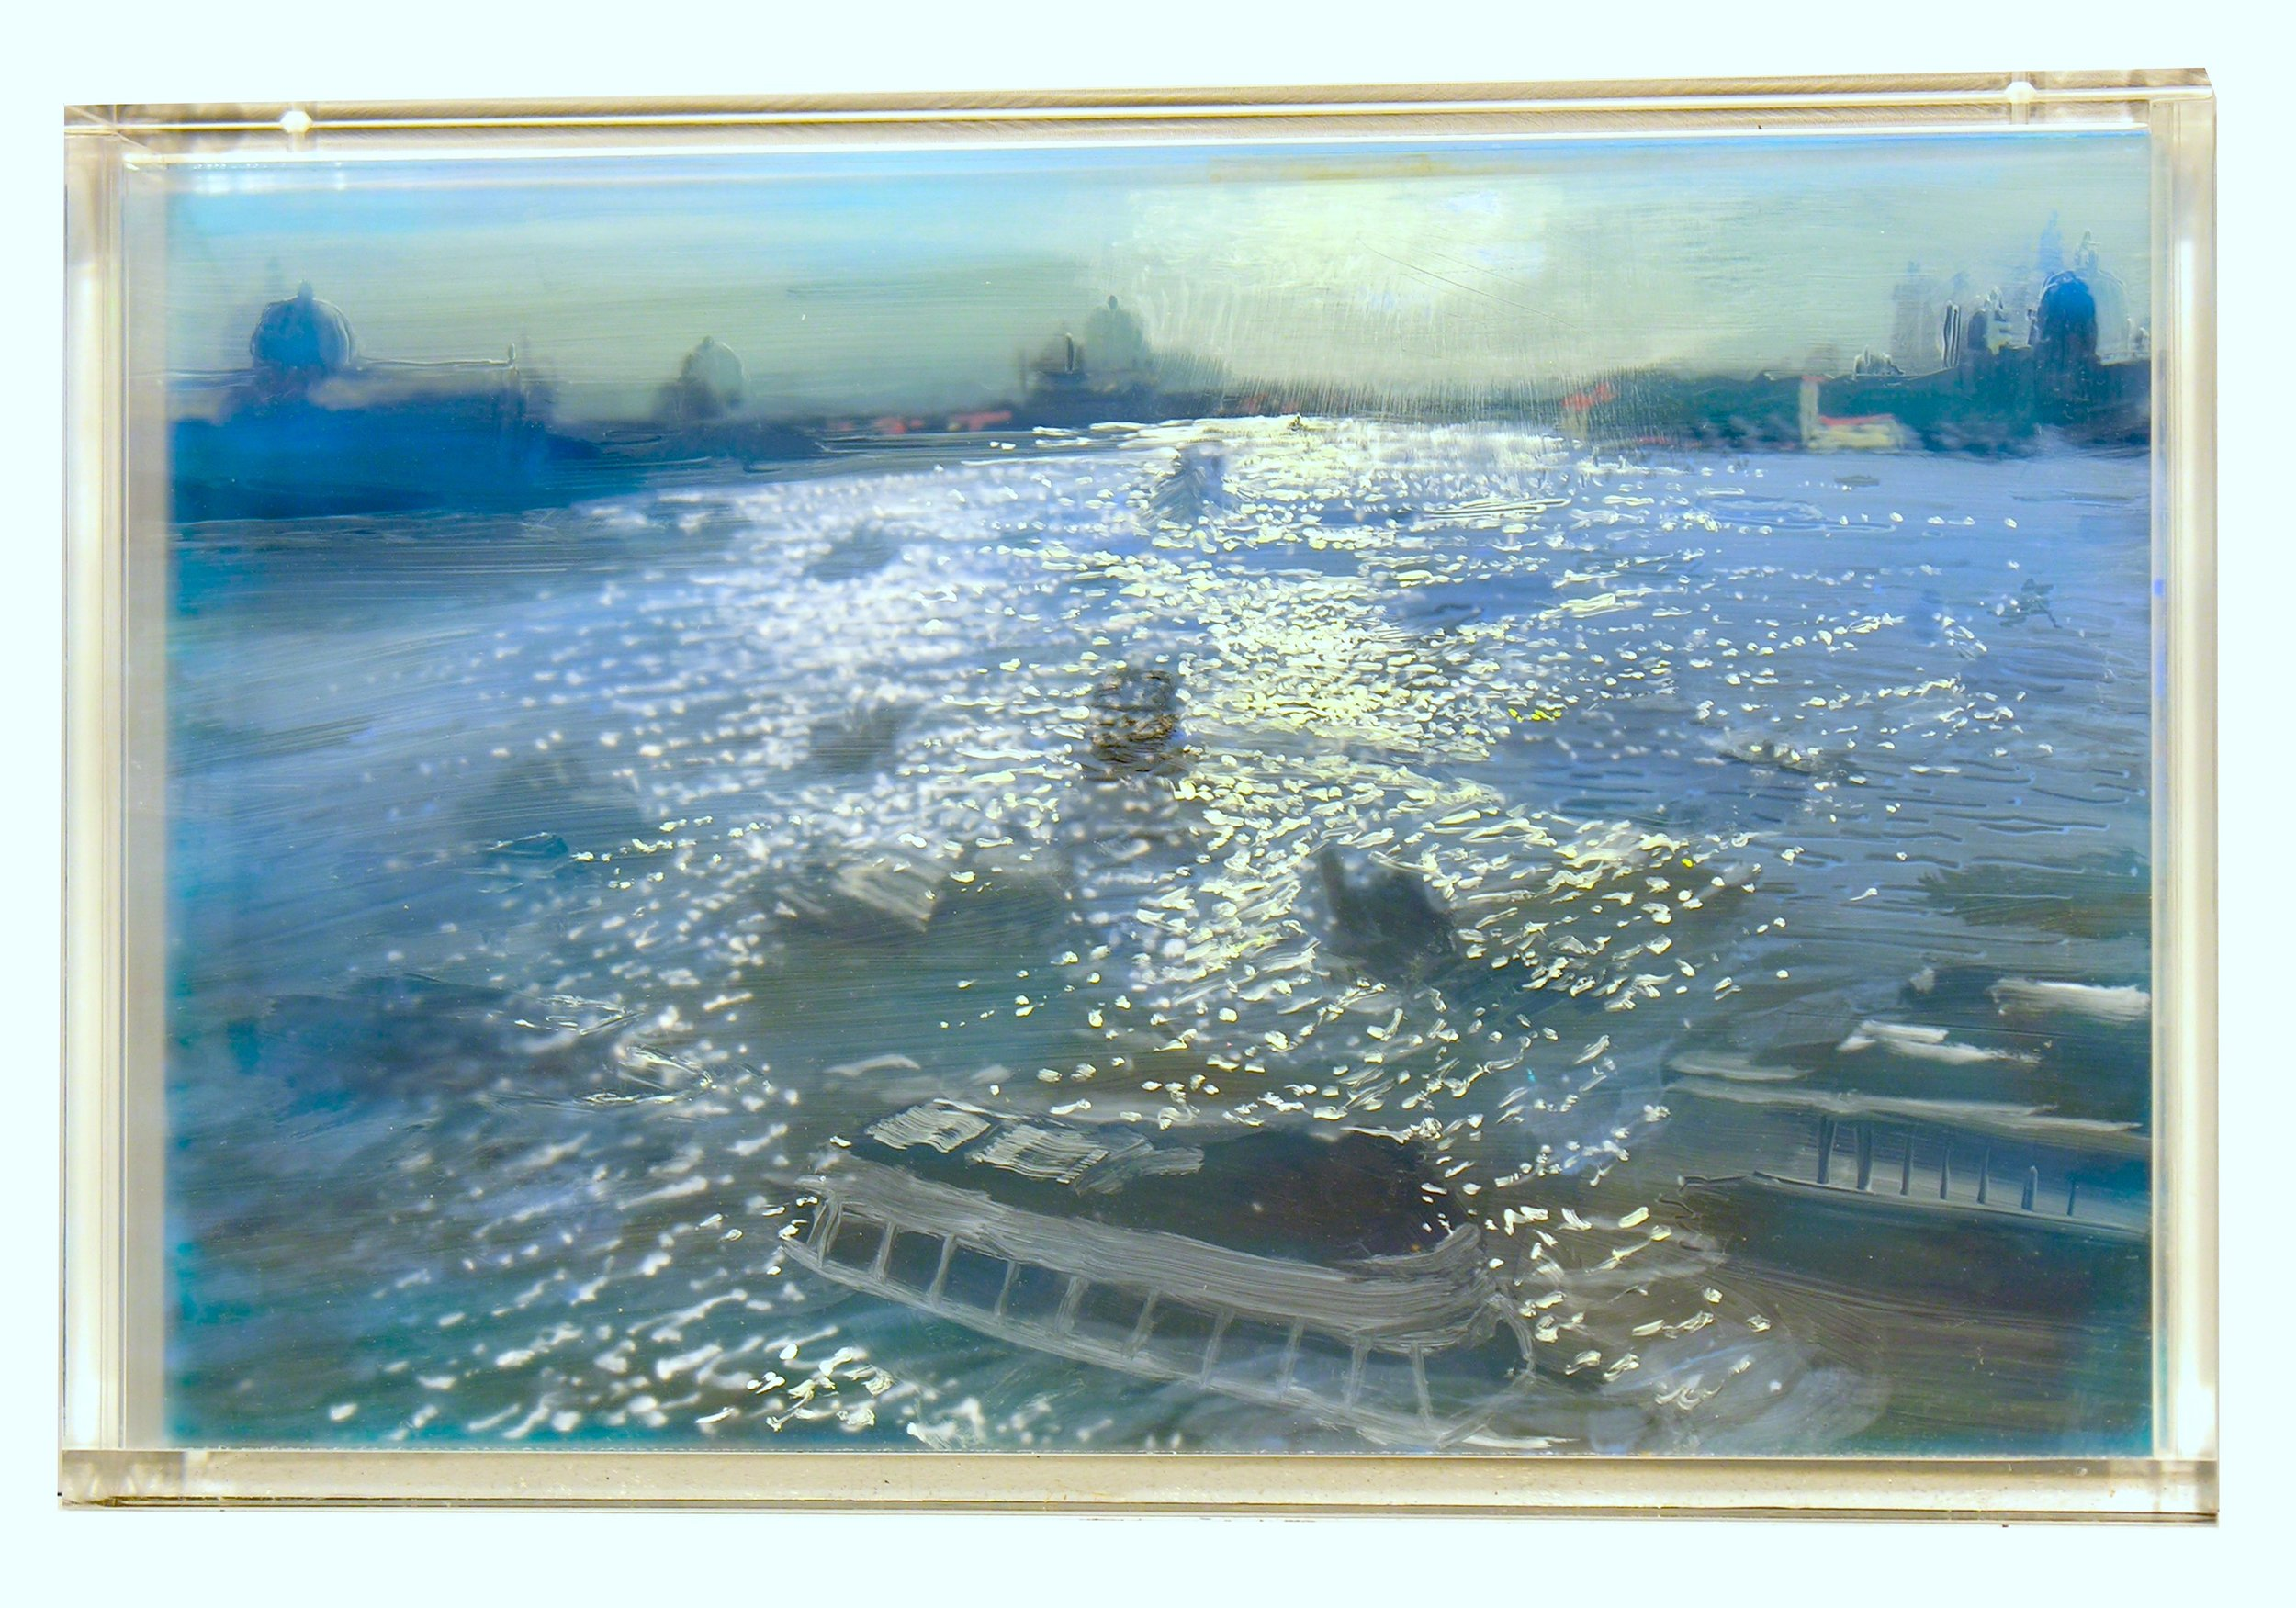 """Venice, Afternoon Traffic, 2 Days   by Martin Weinstein  Acrylic on Multiple Acrylic Sheet, 11"""" x 17"""", 2017"""